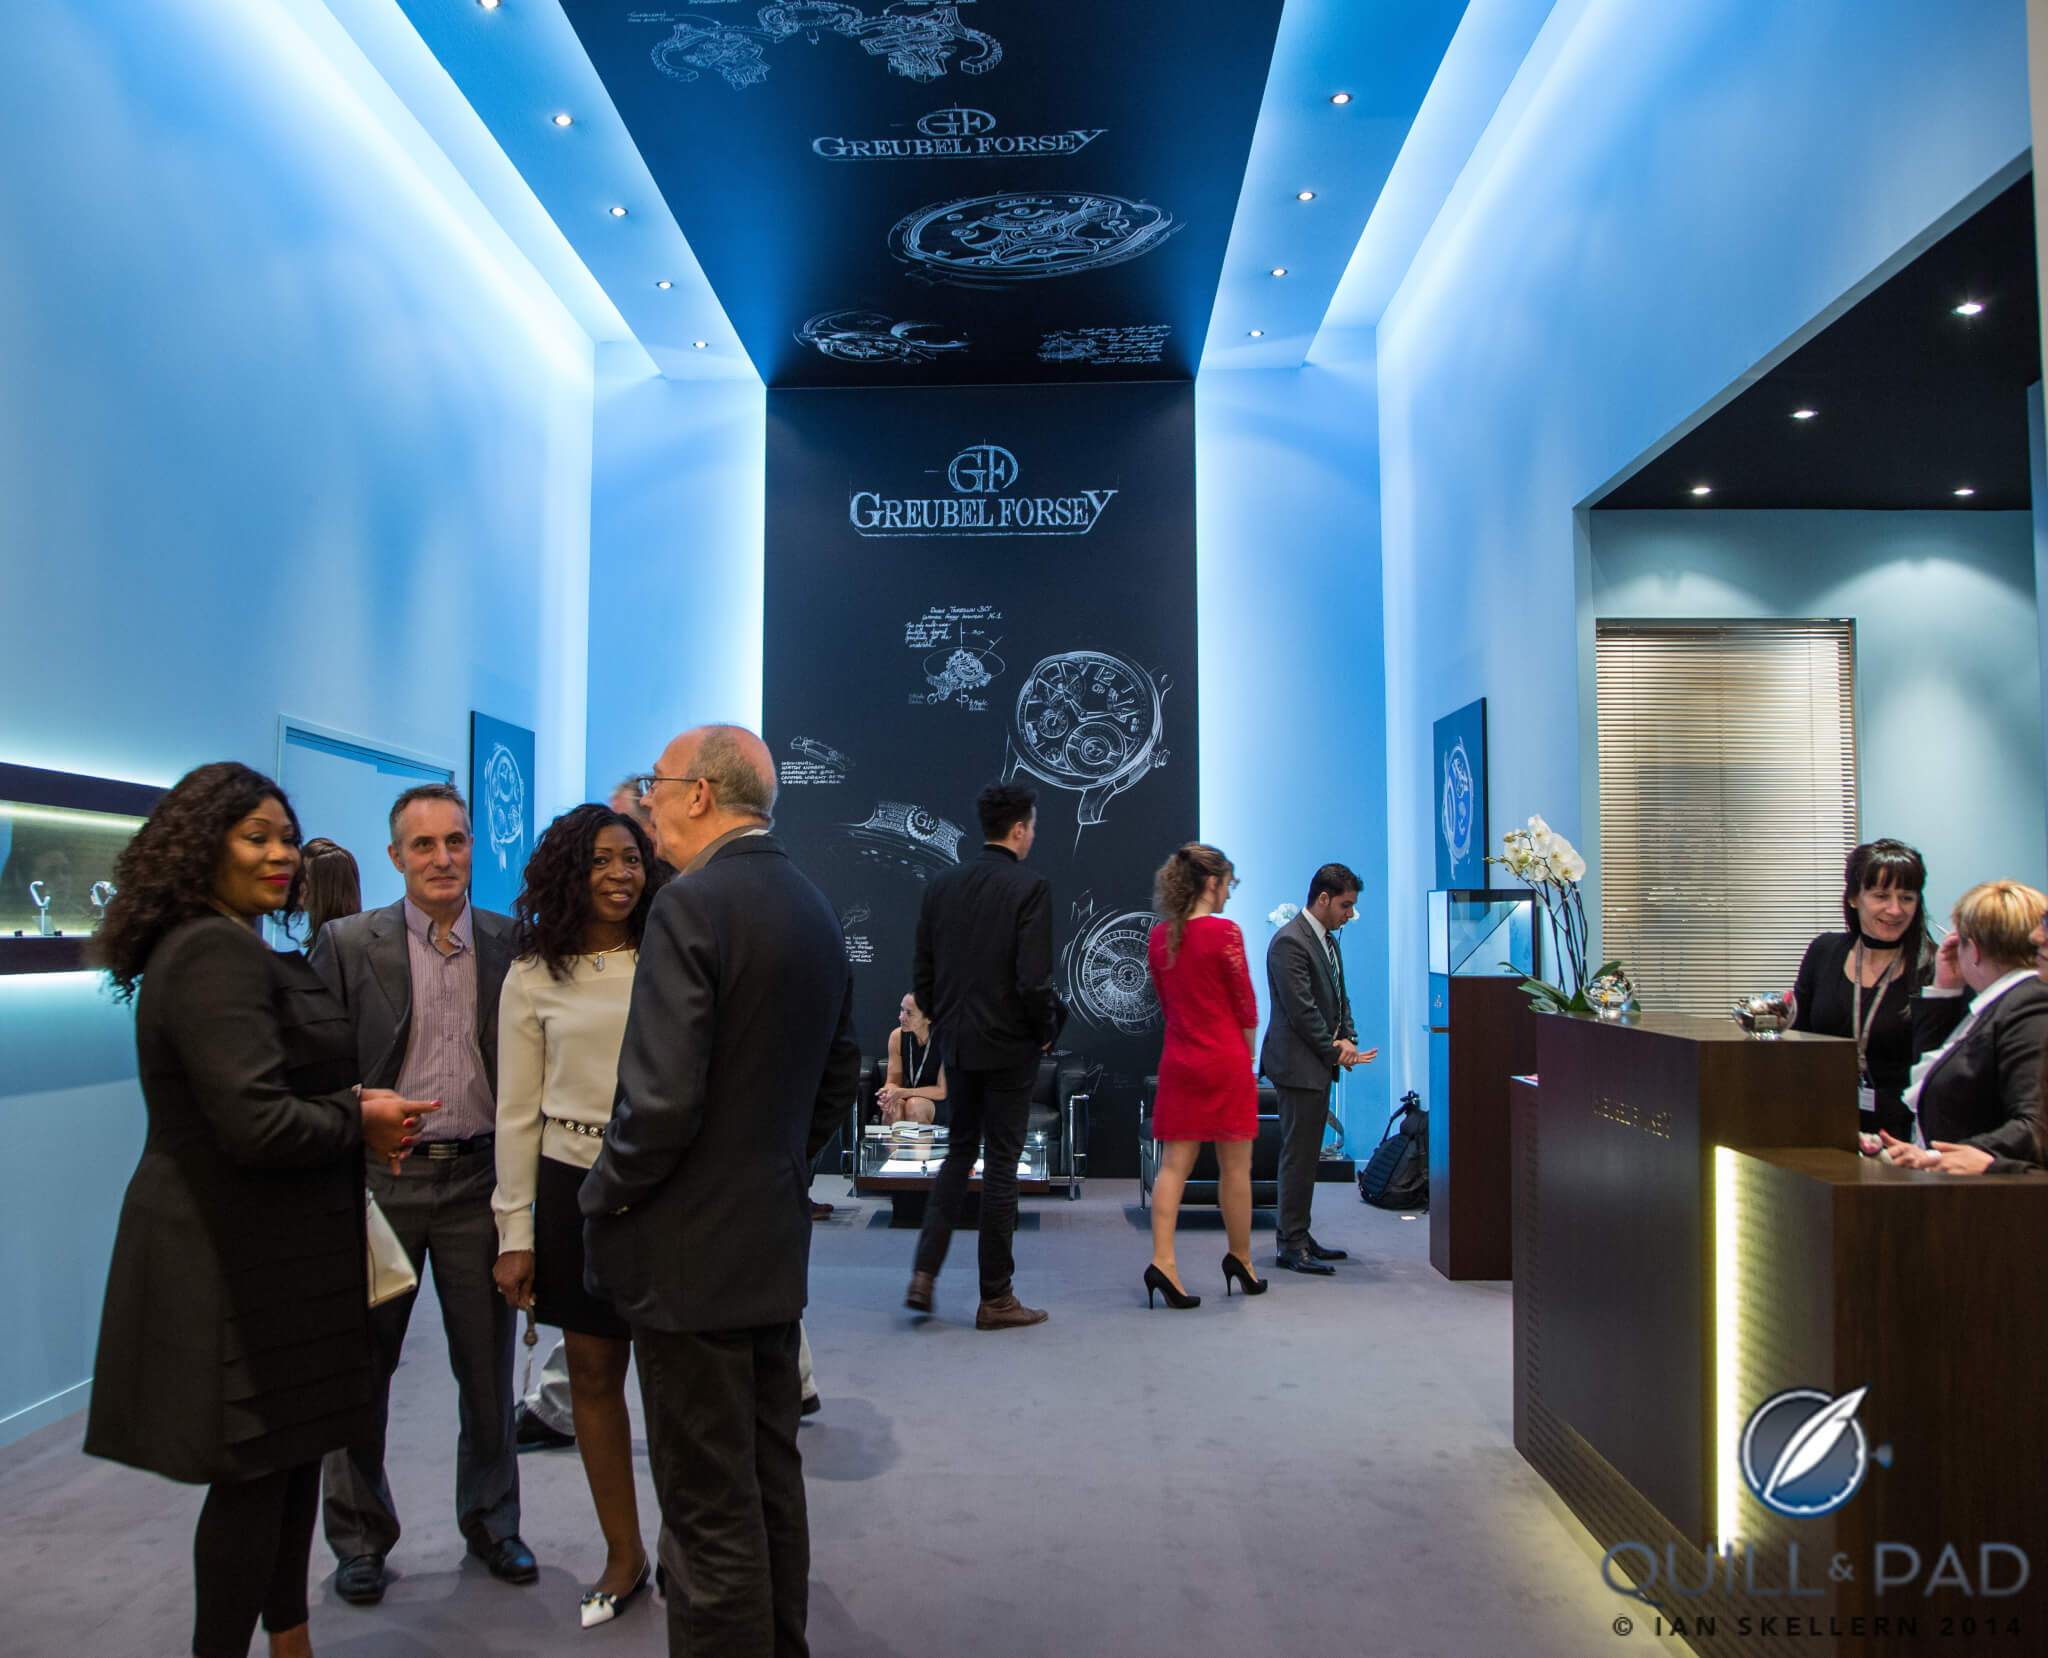 The Greubel Forsey stand at the 2014 SIHH